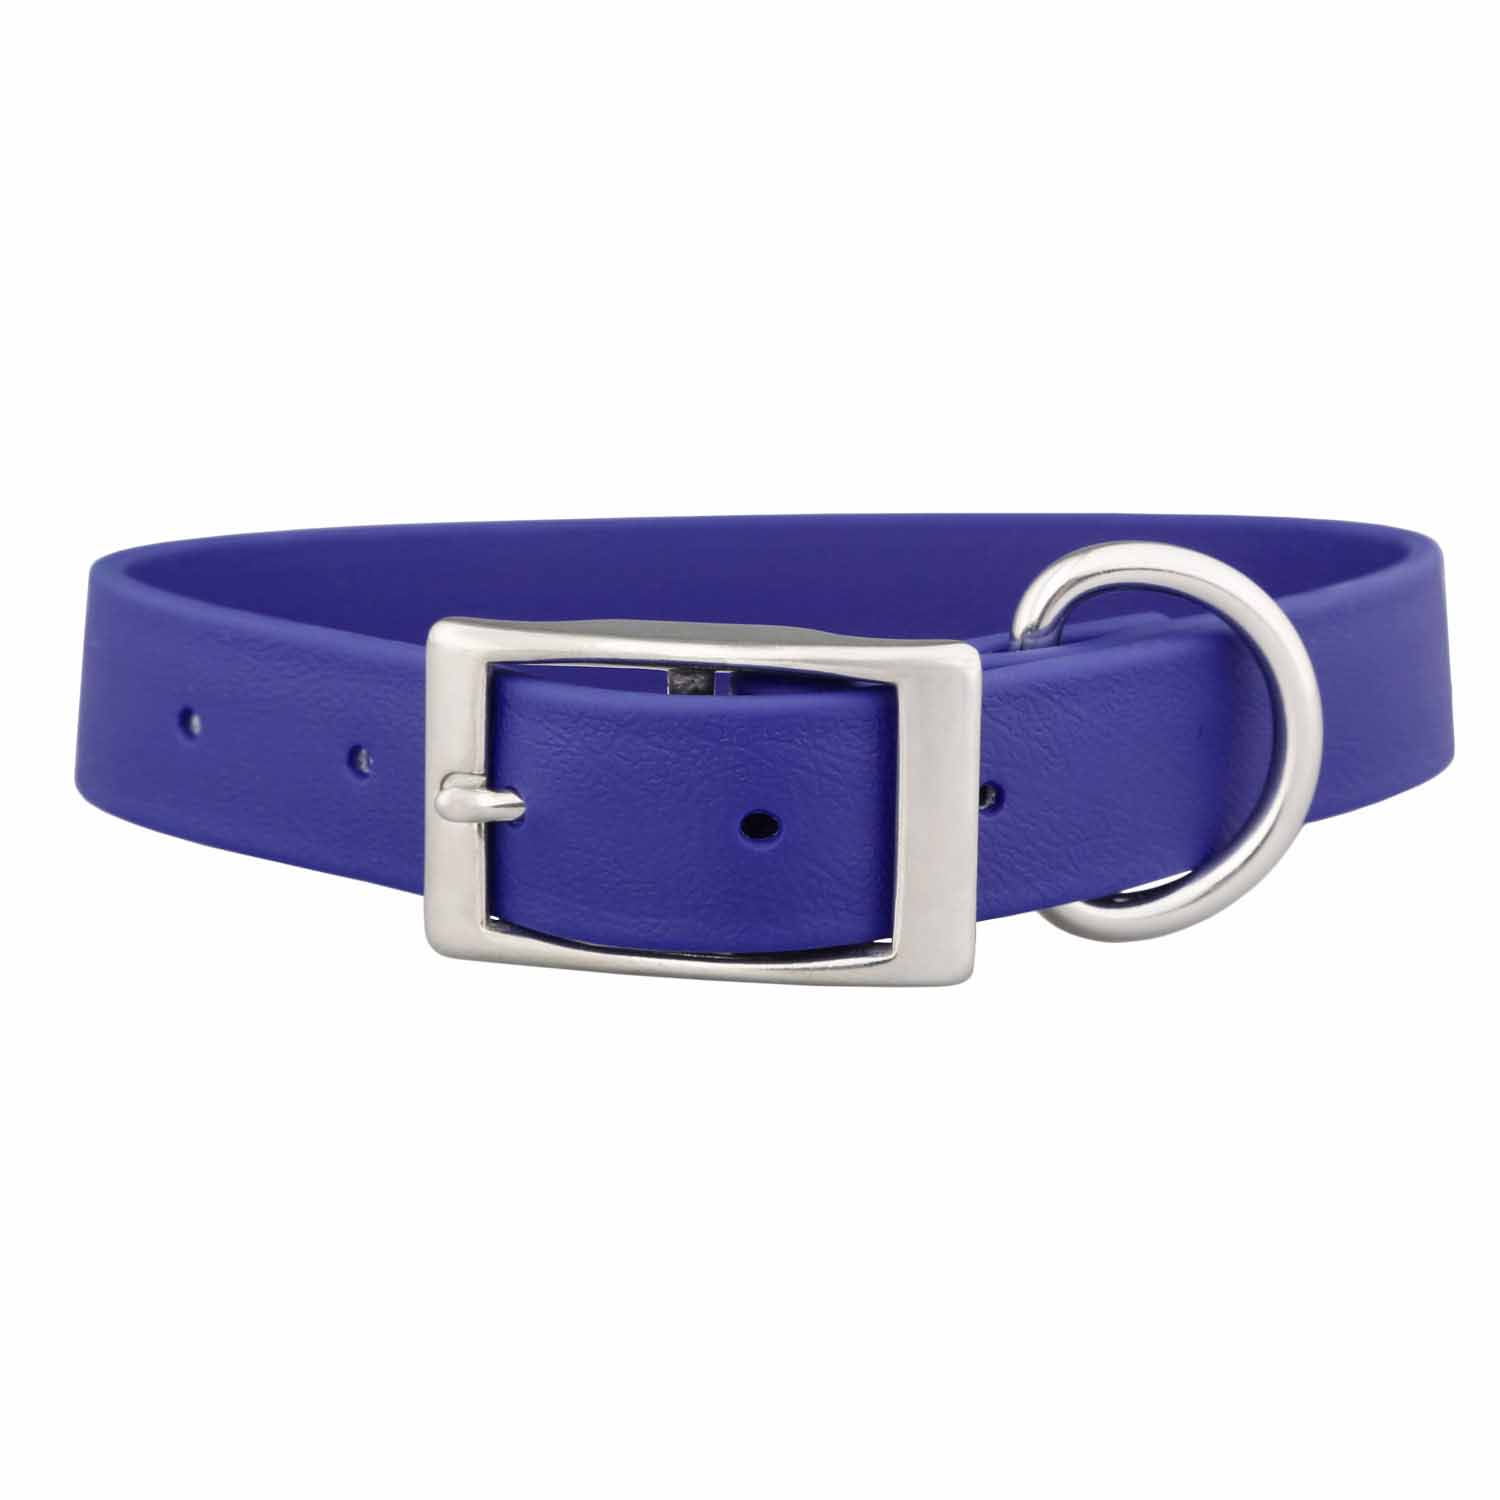 Waterproof Soft Grip Dog Collar Blue Buckle View